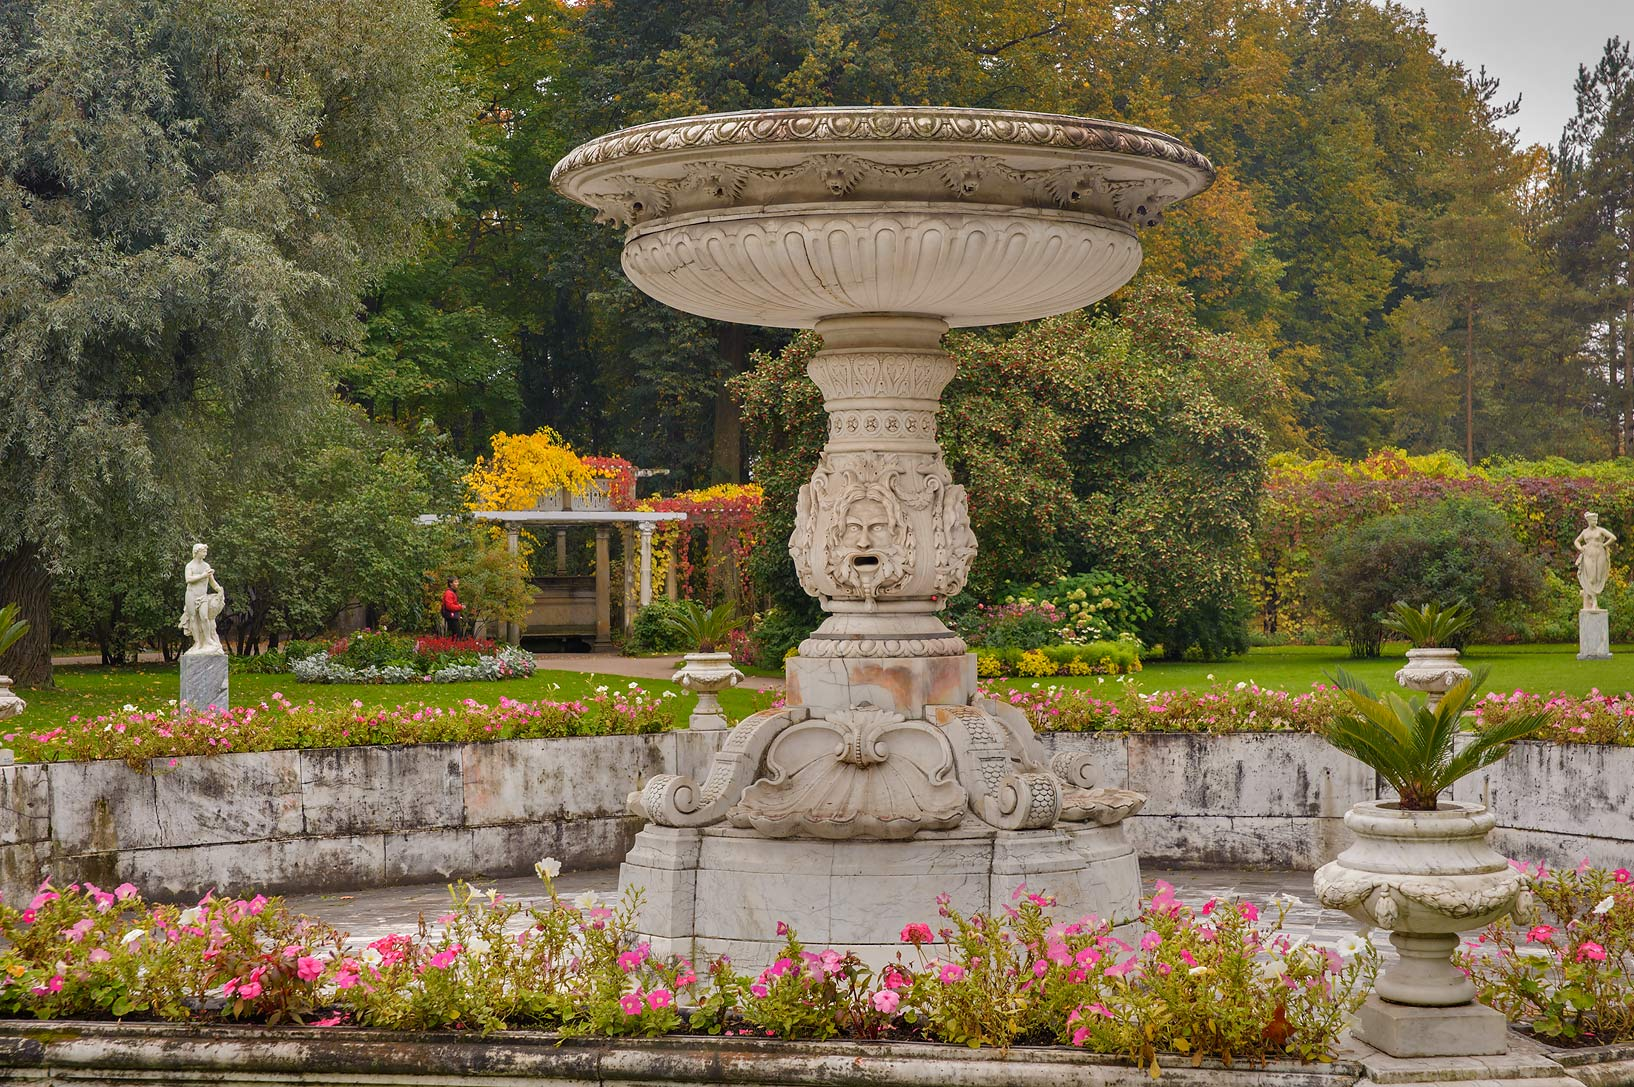 Marble Fountain of Sobstvenny Sadik (Private...Selo) near St.Petersburg, Russia